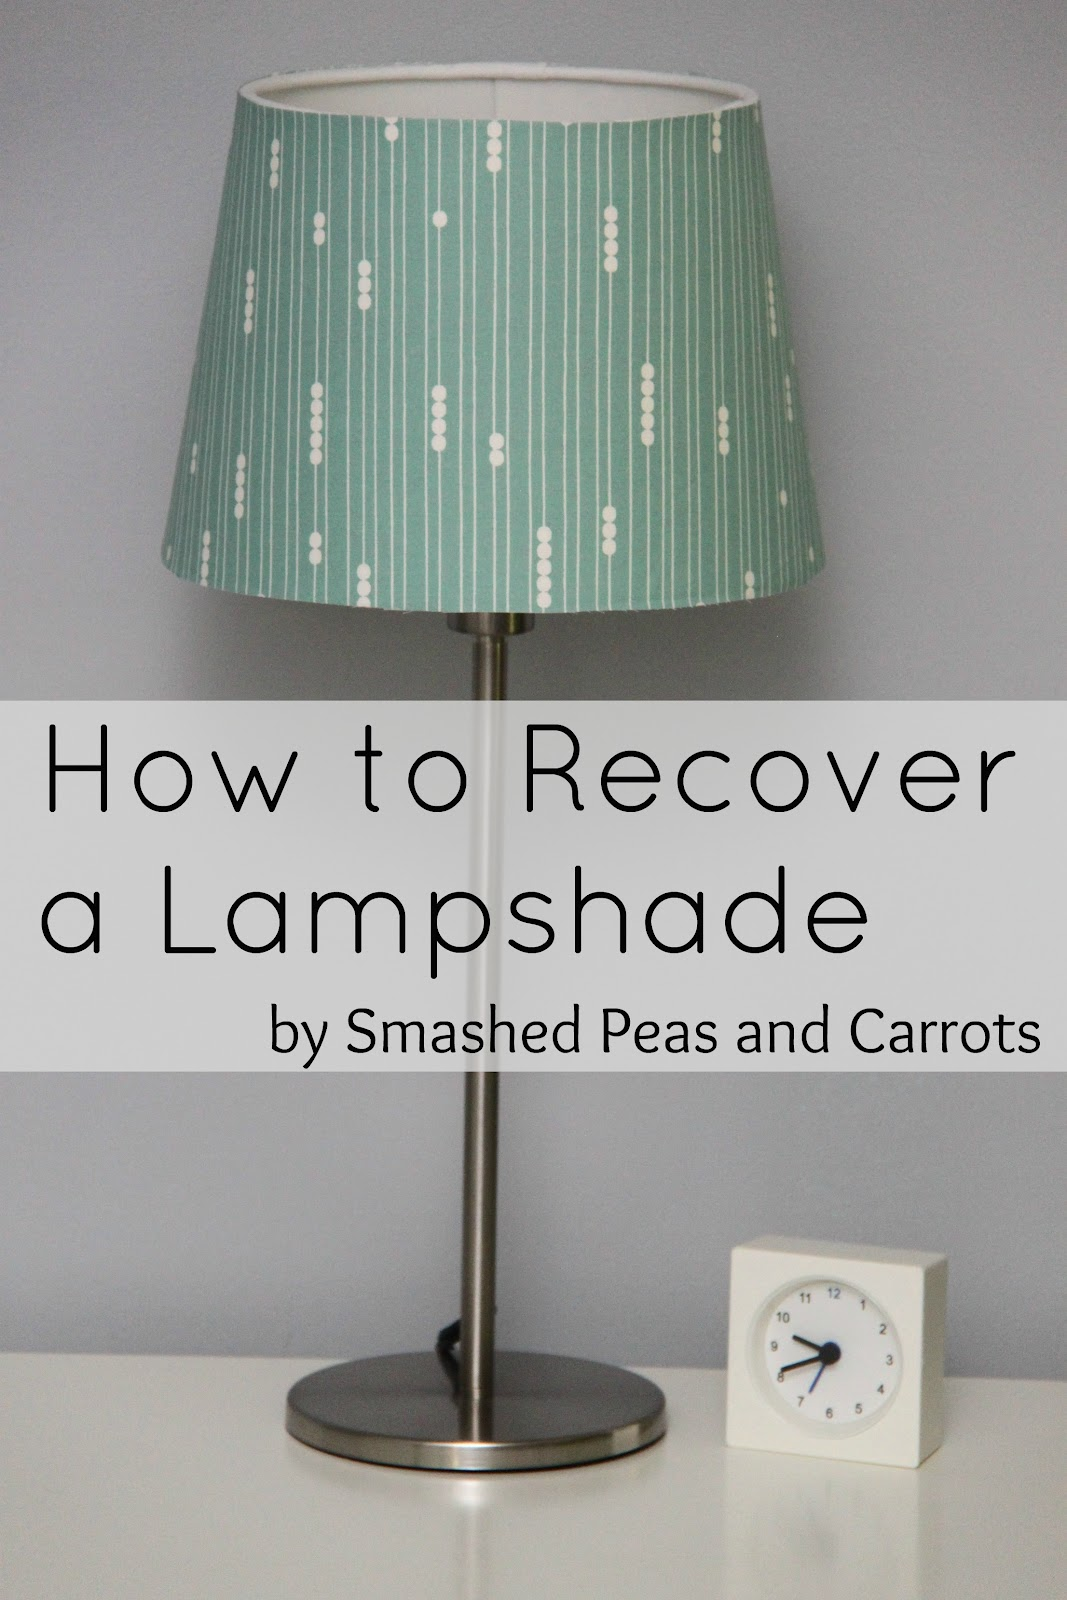 How to recover a lampshade tutorial smashed peas carrots i bought these super plain and simple lampshades at ikea for just a few bucks and wanted to coordinate them with the room decor mozeypictures Image collections